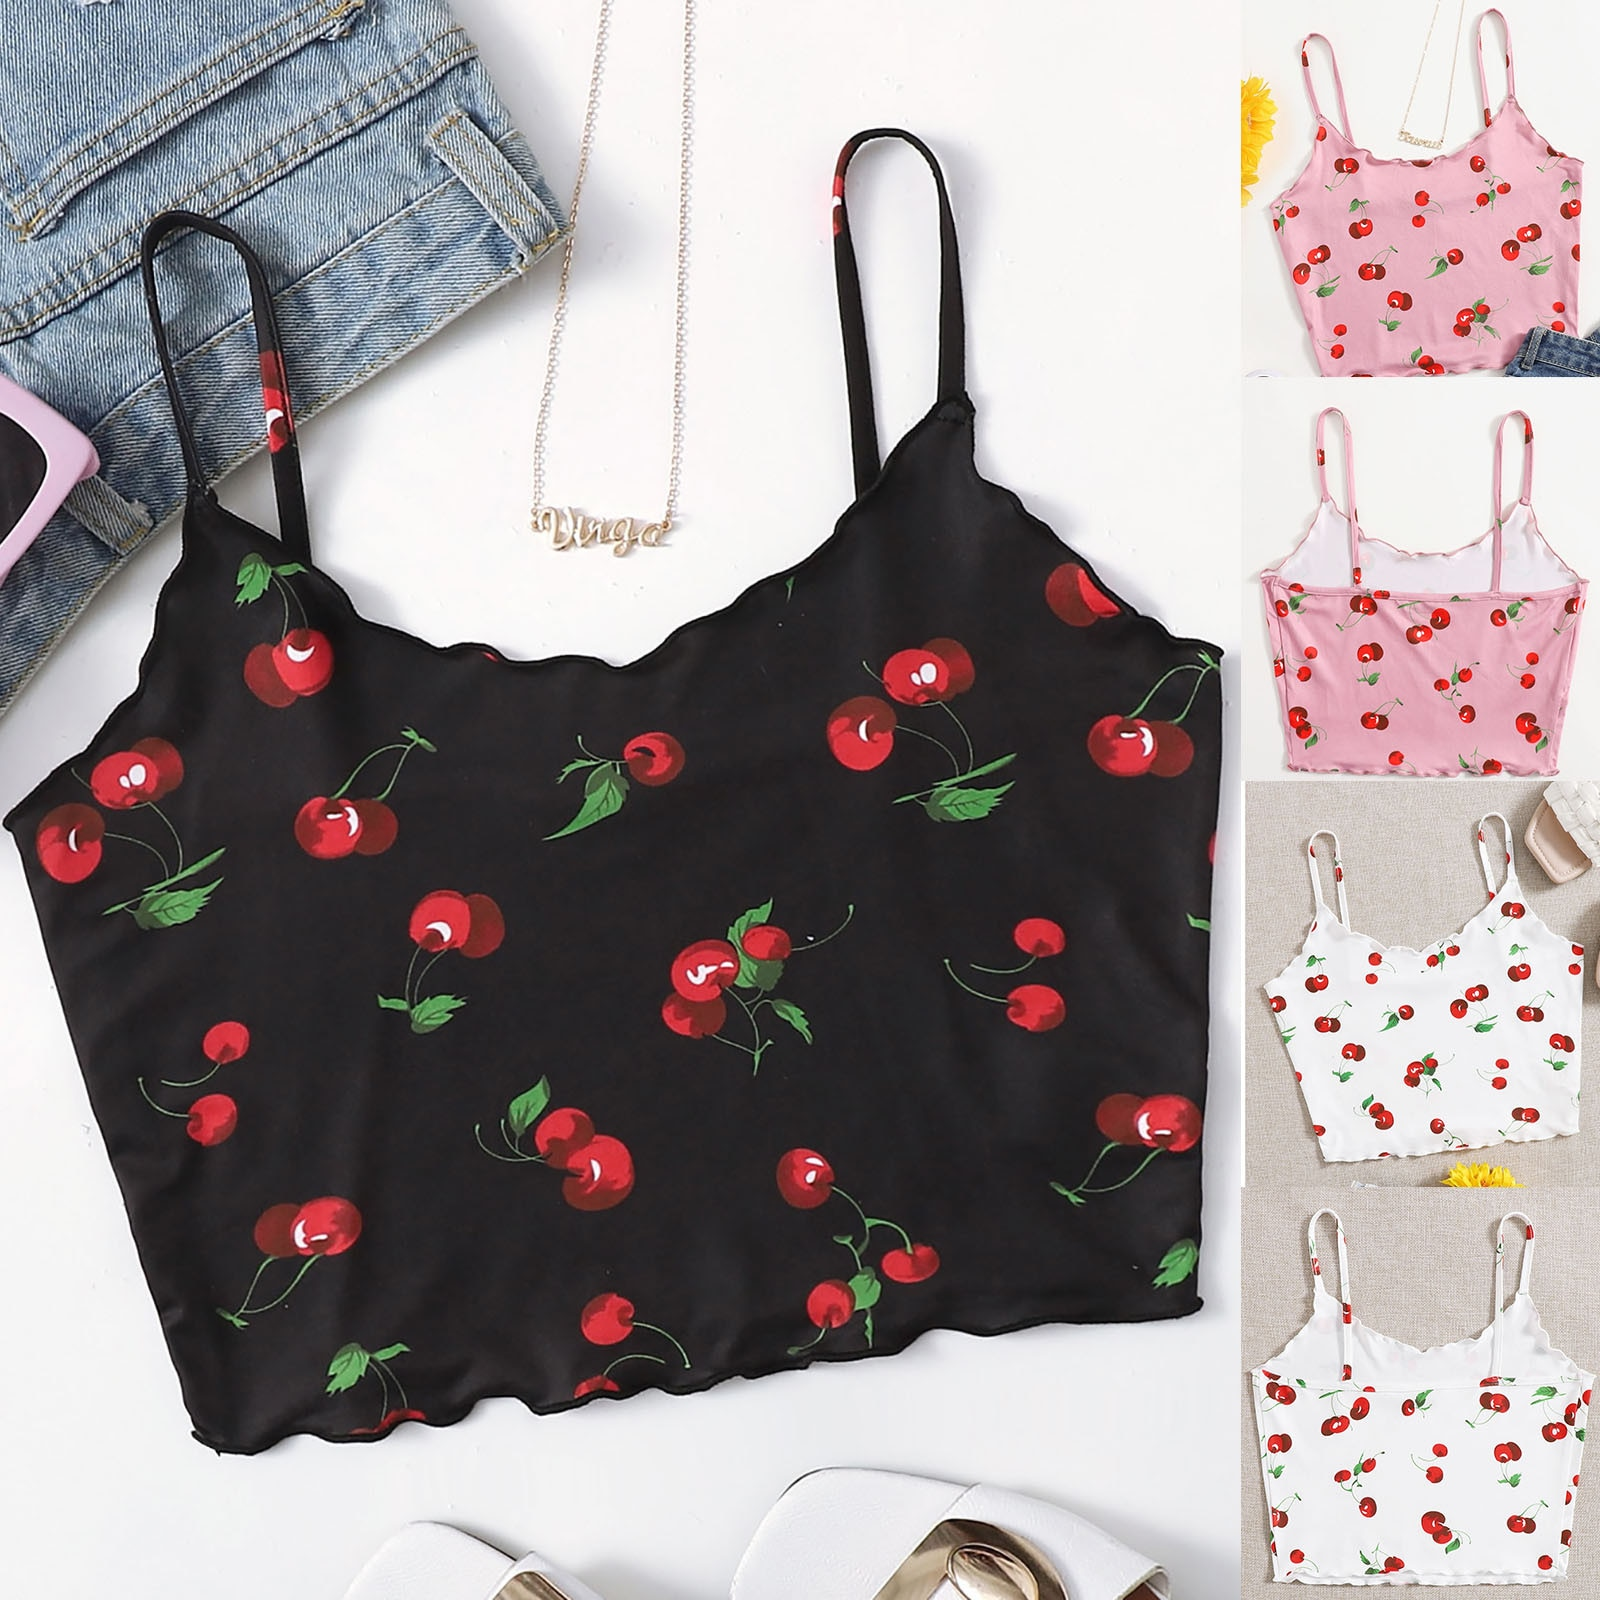 Lace Sexy Skinny Women Y2k Cami Summer Backless E Girl Camisole Y2k Aesthetic Tank Tops Floral Print